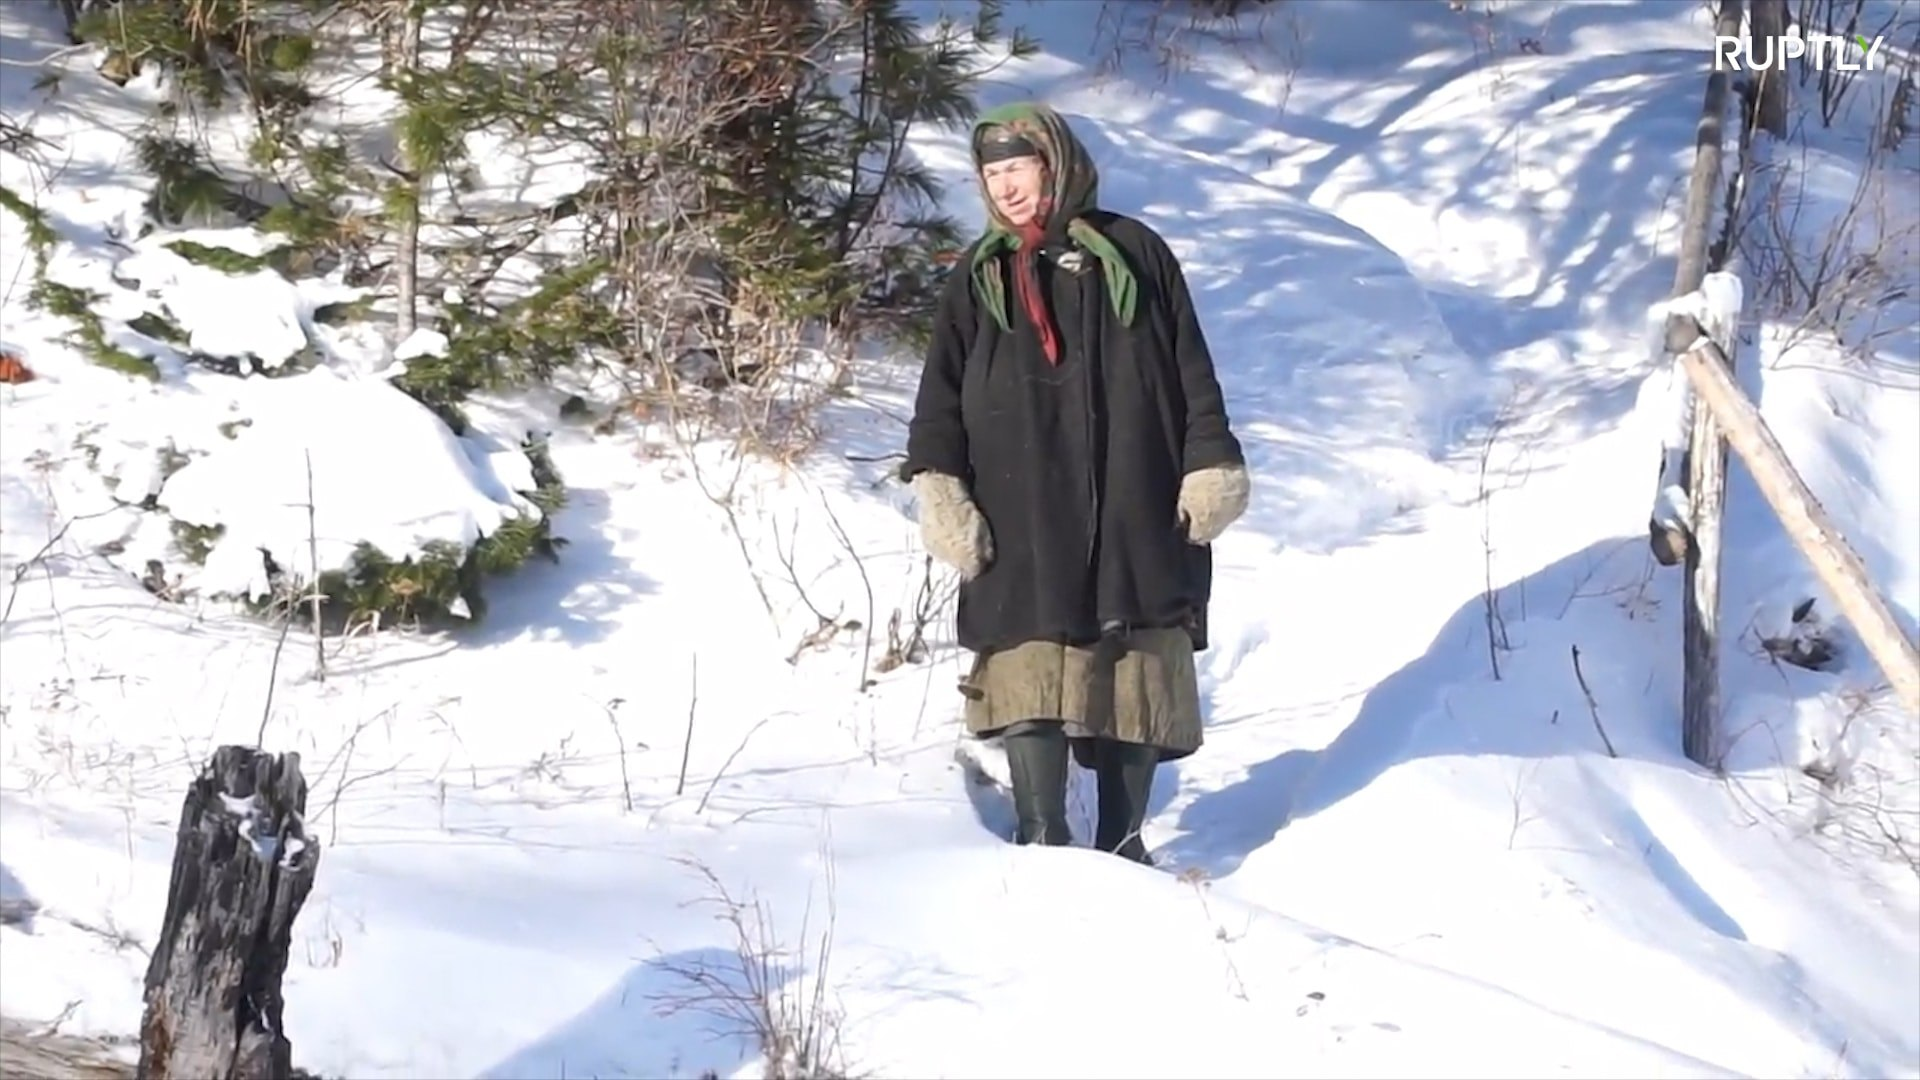 See the daily routine an Old Believer hermit living in Siberia